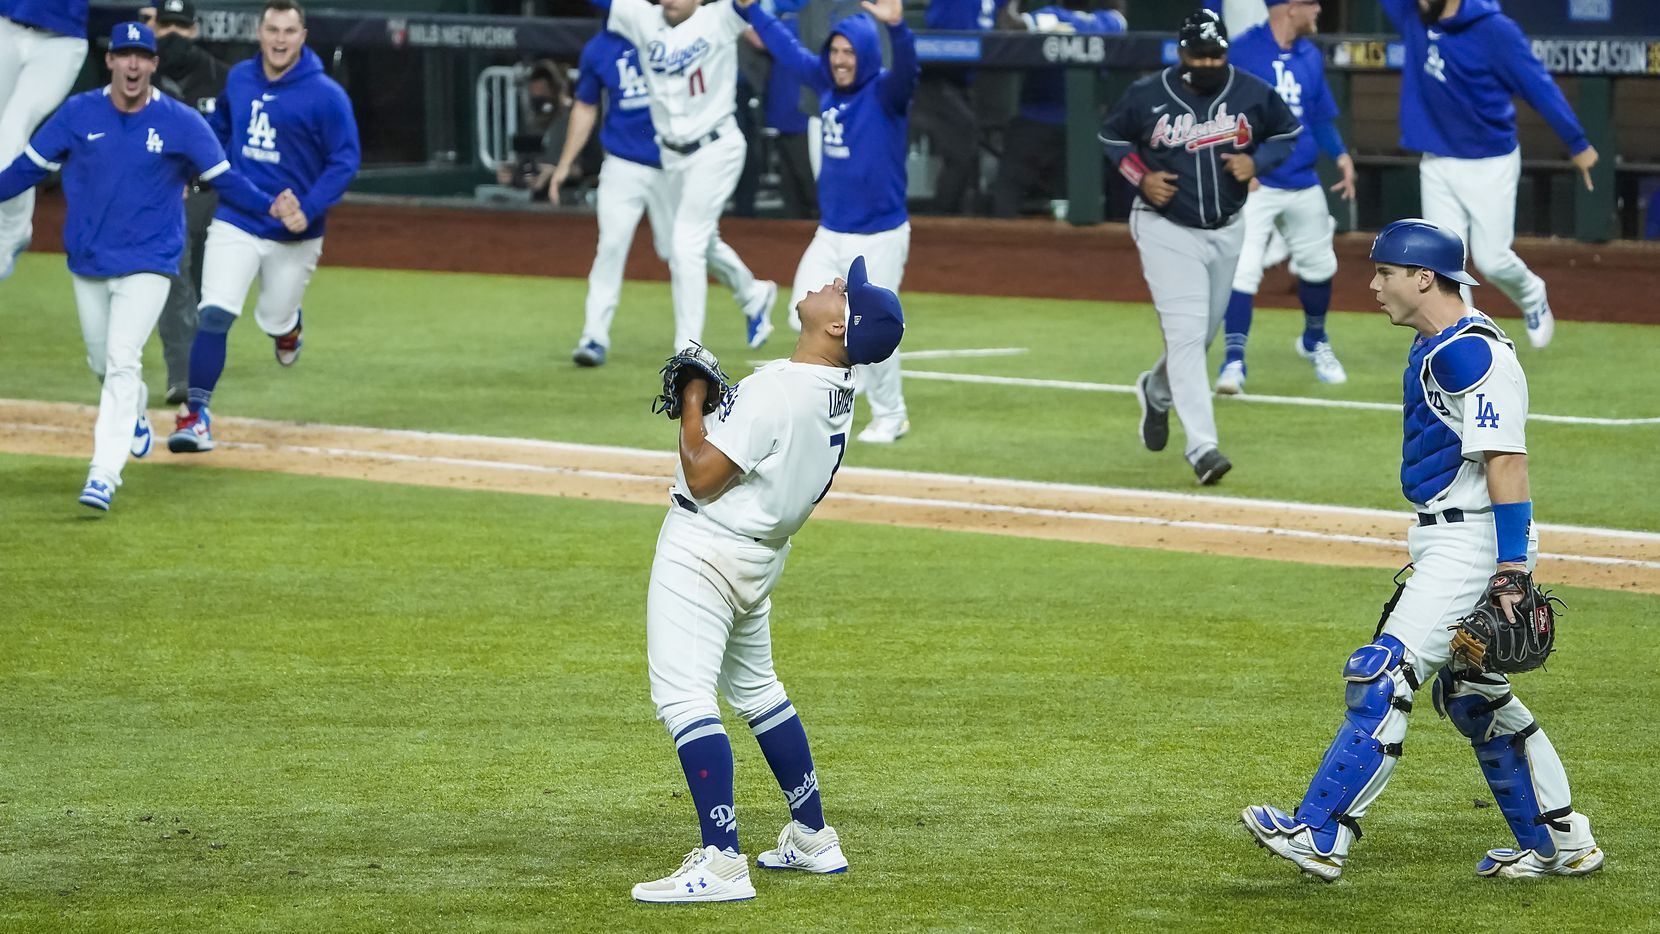 Los Angeles Dodgers pitcher Julio Urias (7) celebrates as the dugout empties after the final out of a 4-3 victory over the Atlanta Braves in Game 7 of a National League Championship Series at Globe Life Field on Sunday, Oct. 18, 2020.